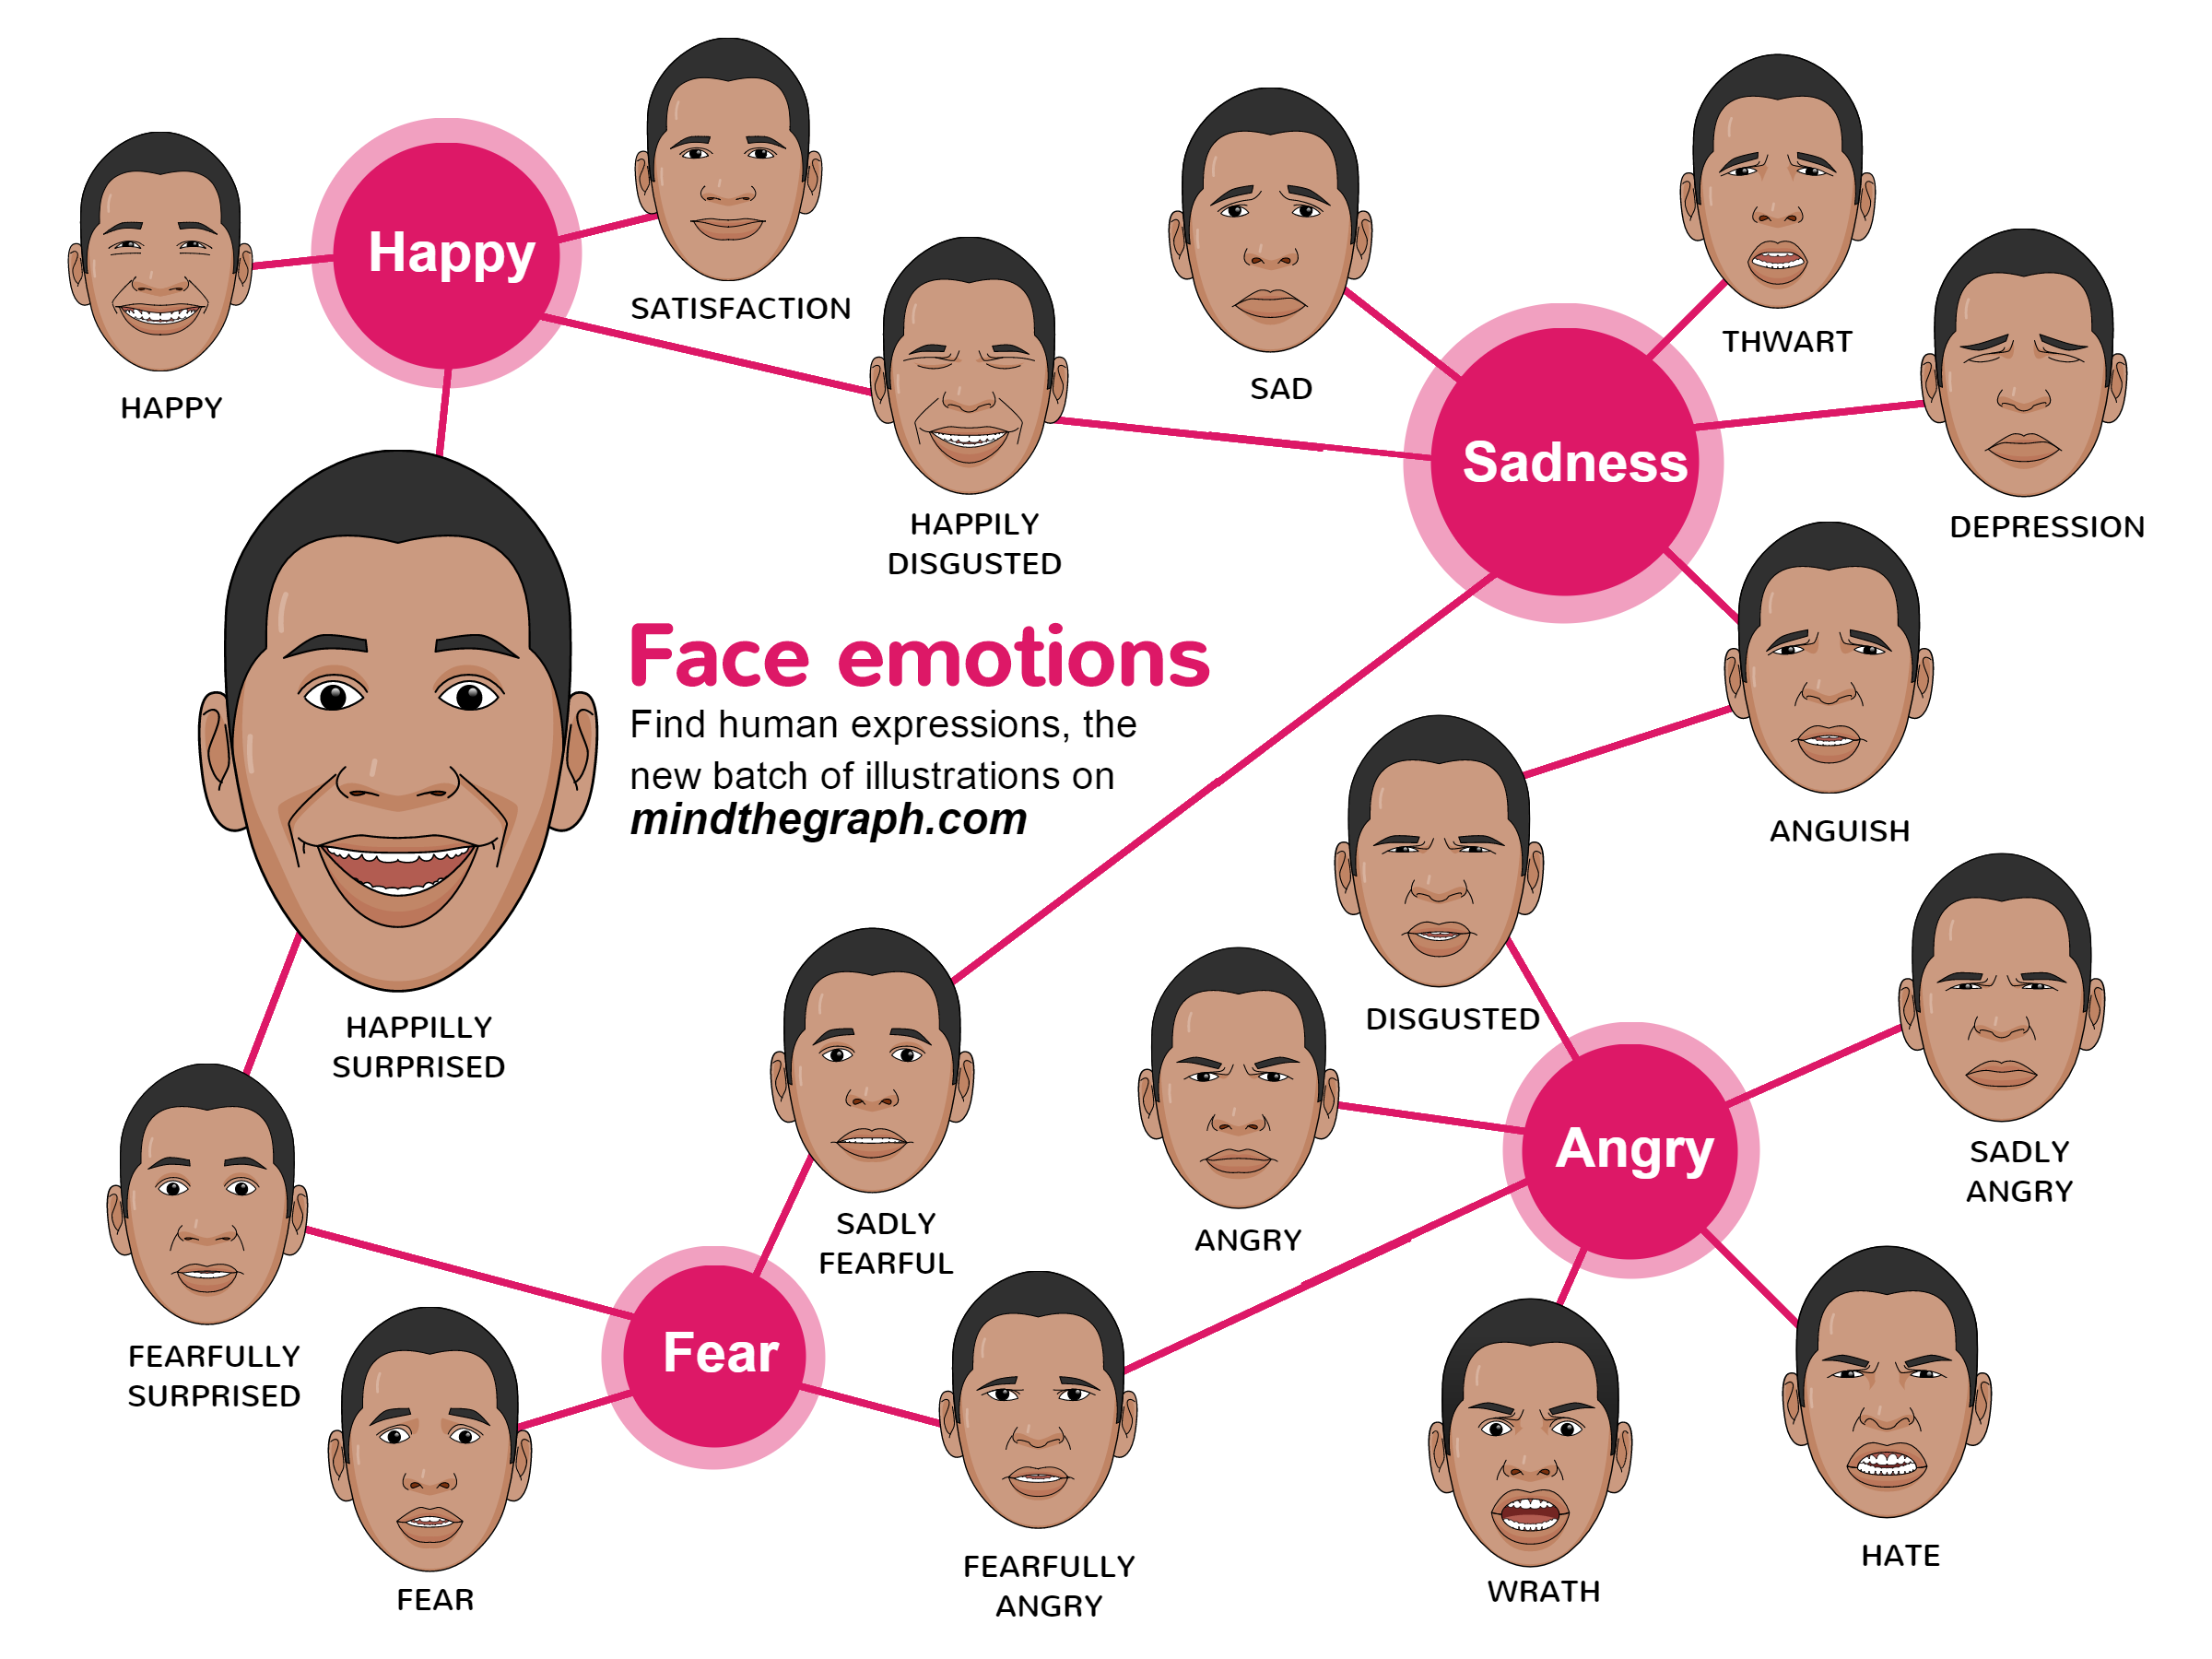 Human faces with emotions and expressions